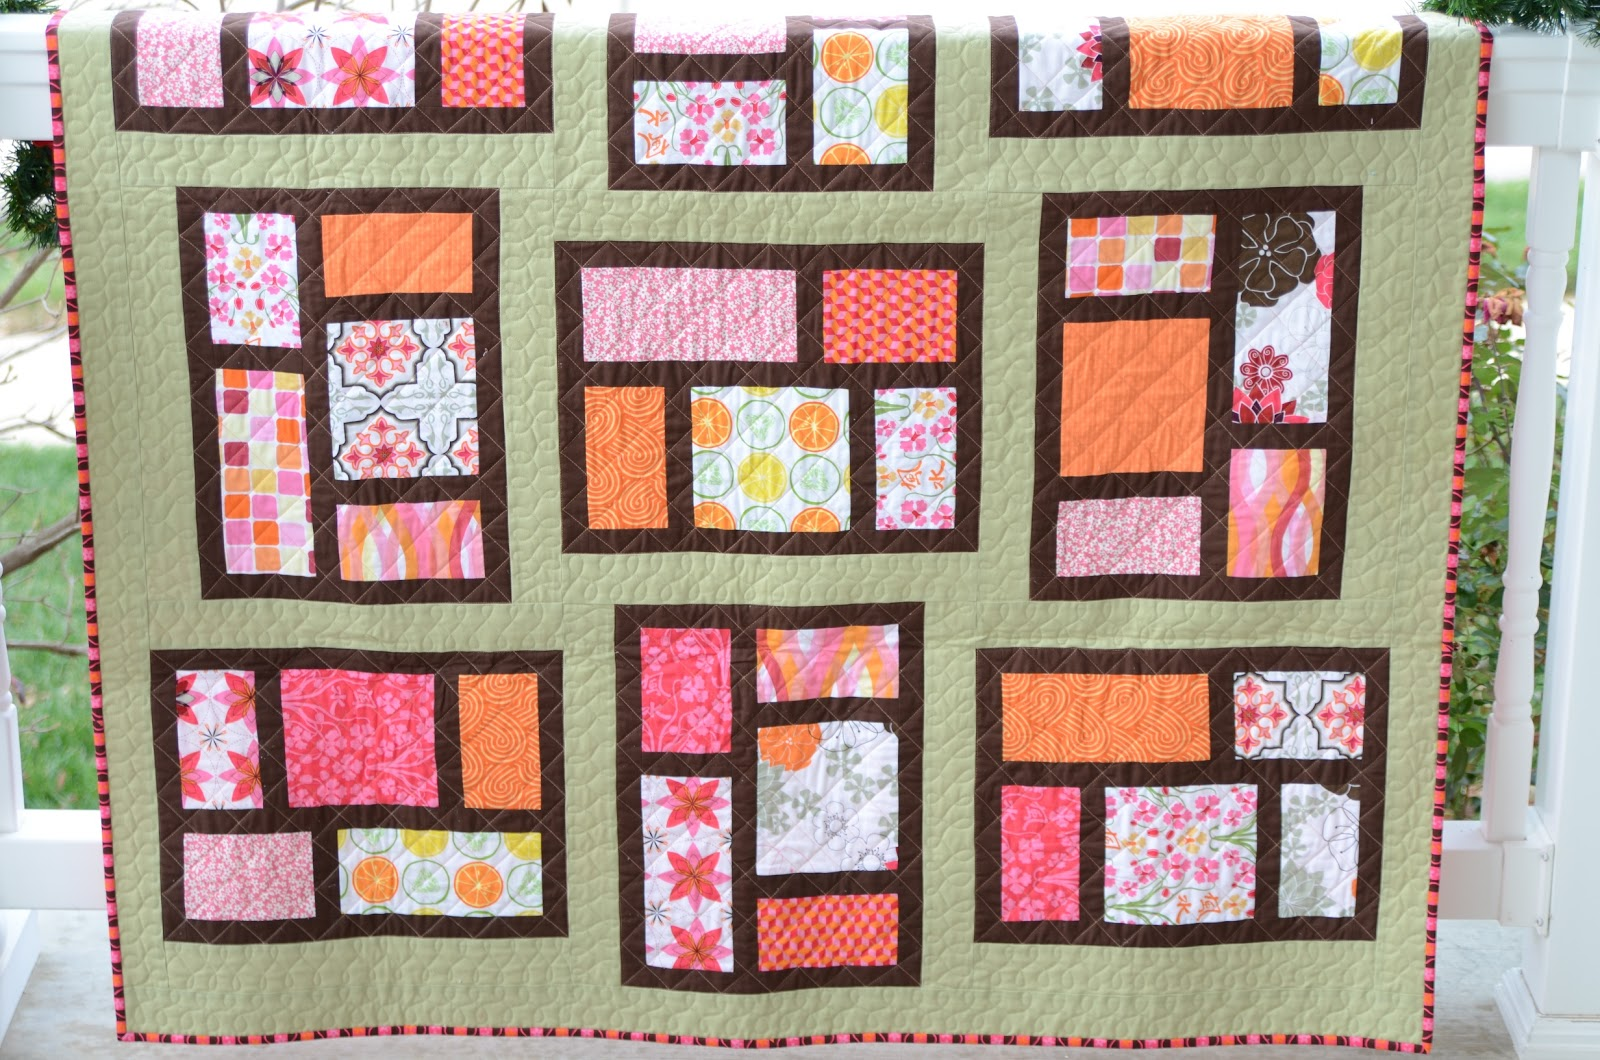 hyacinth quilt designs kitchen window quilt